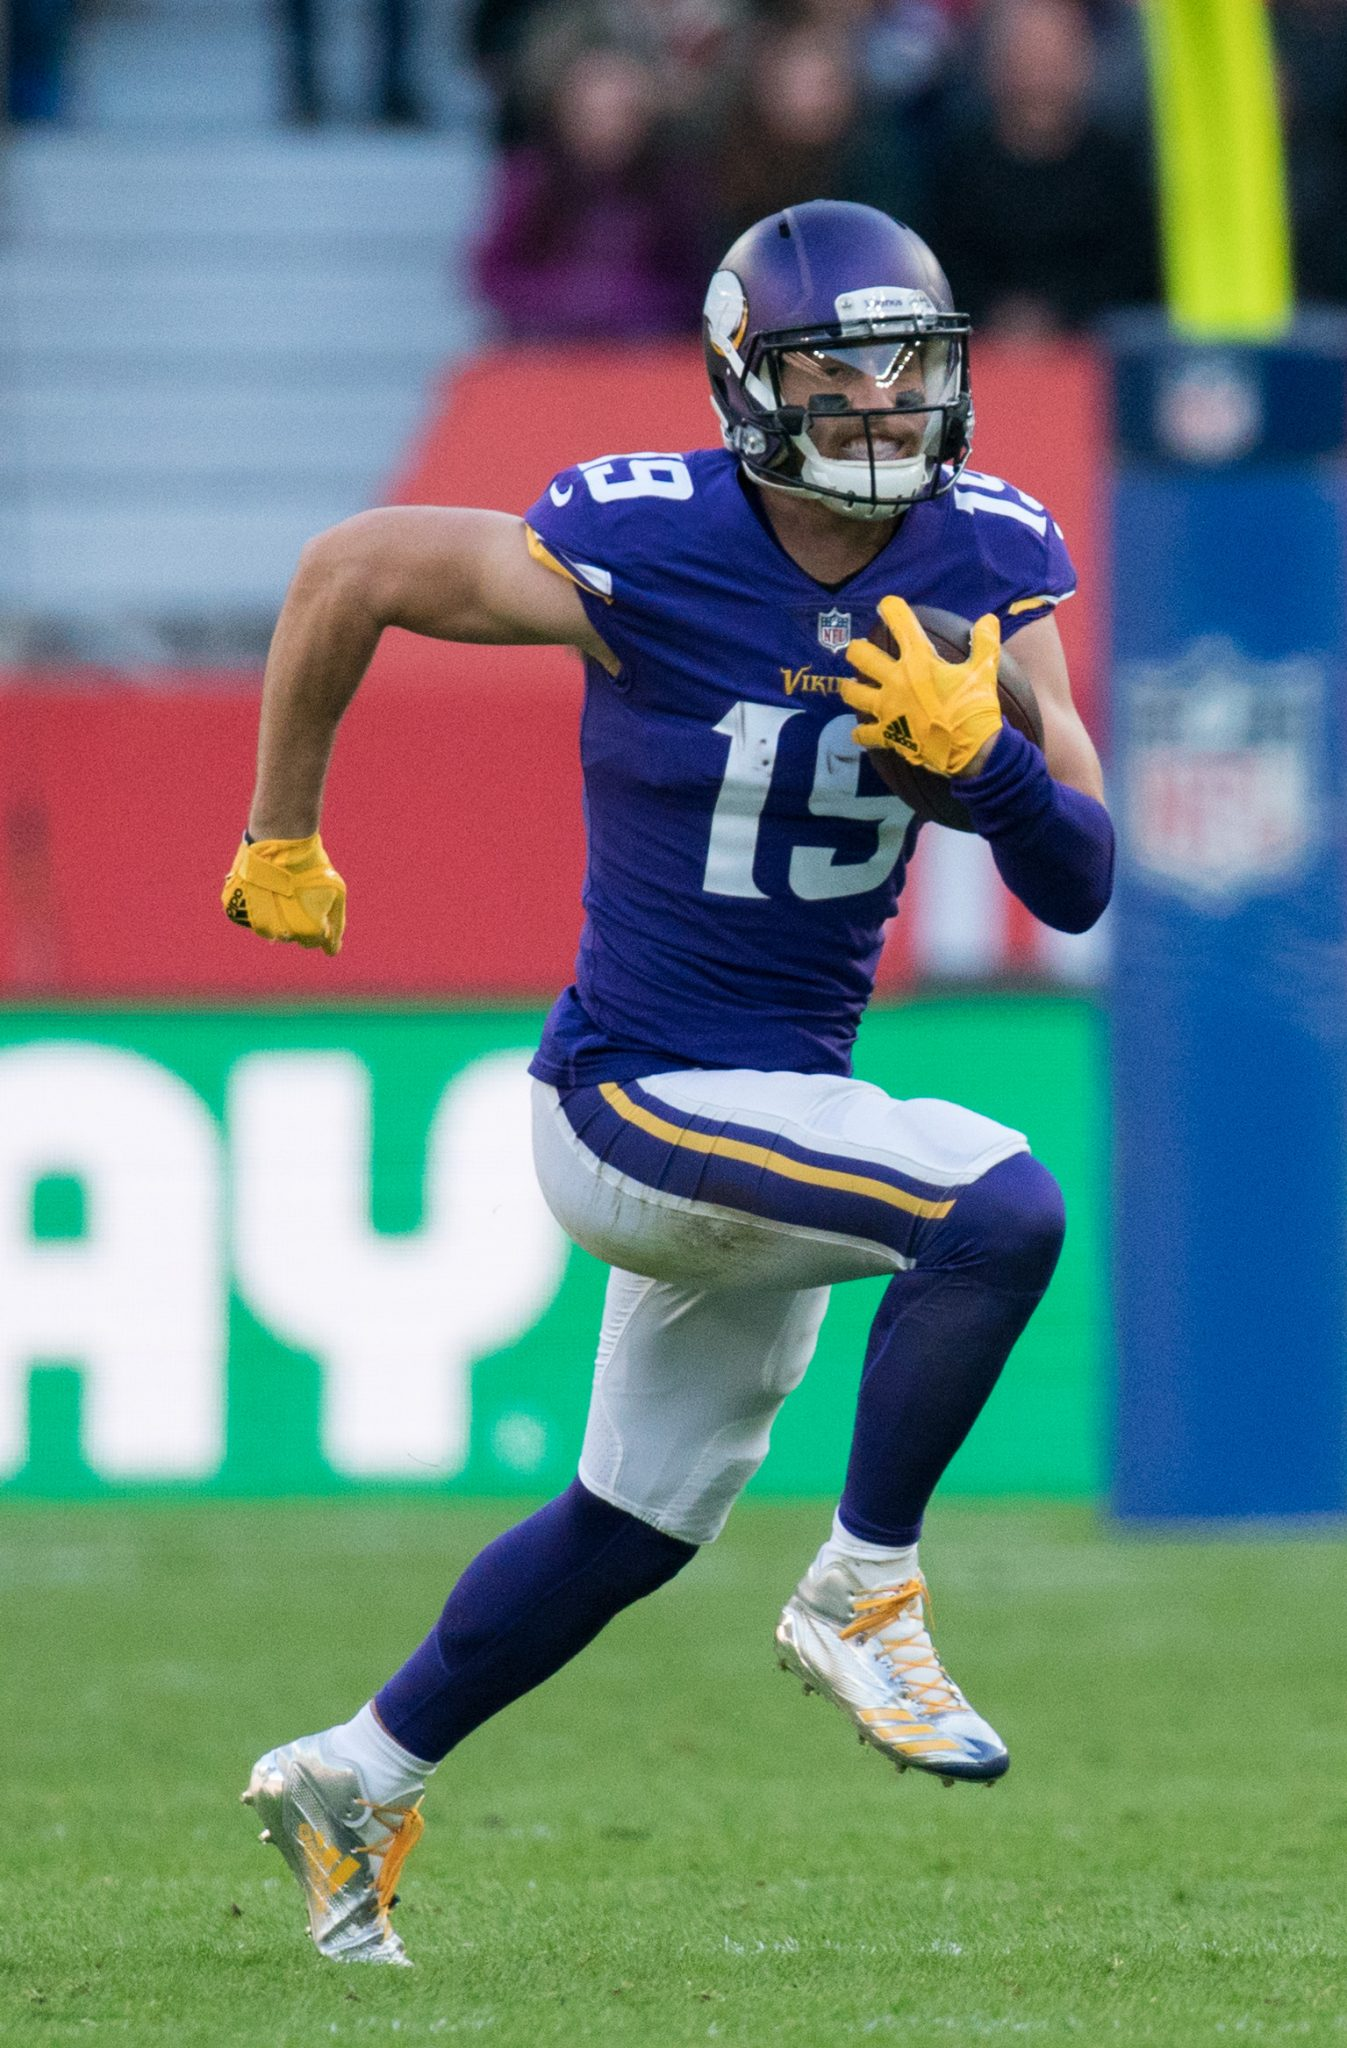 Minnesota Vikings wide receiver Adam Thielen  (19) runs with the ball. Cleveland Browns and the Minnesota Vikings  play in the NFL London Games at Twickenham Stadium in London on Sunday, October 29. photo:Bob MartinNFL